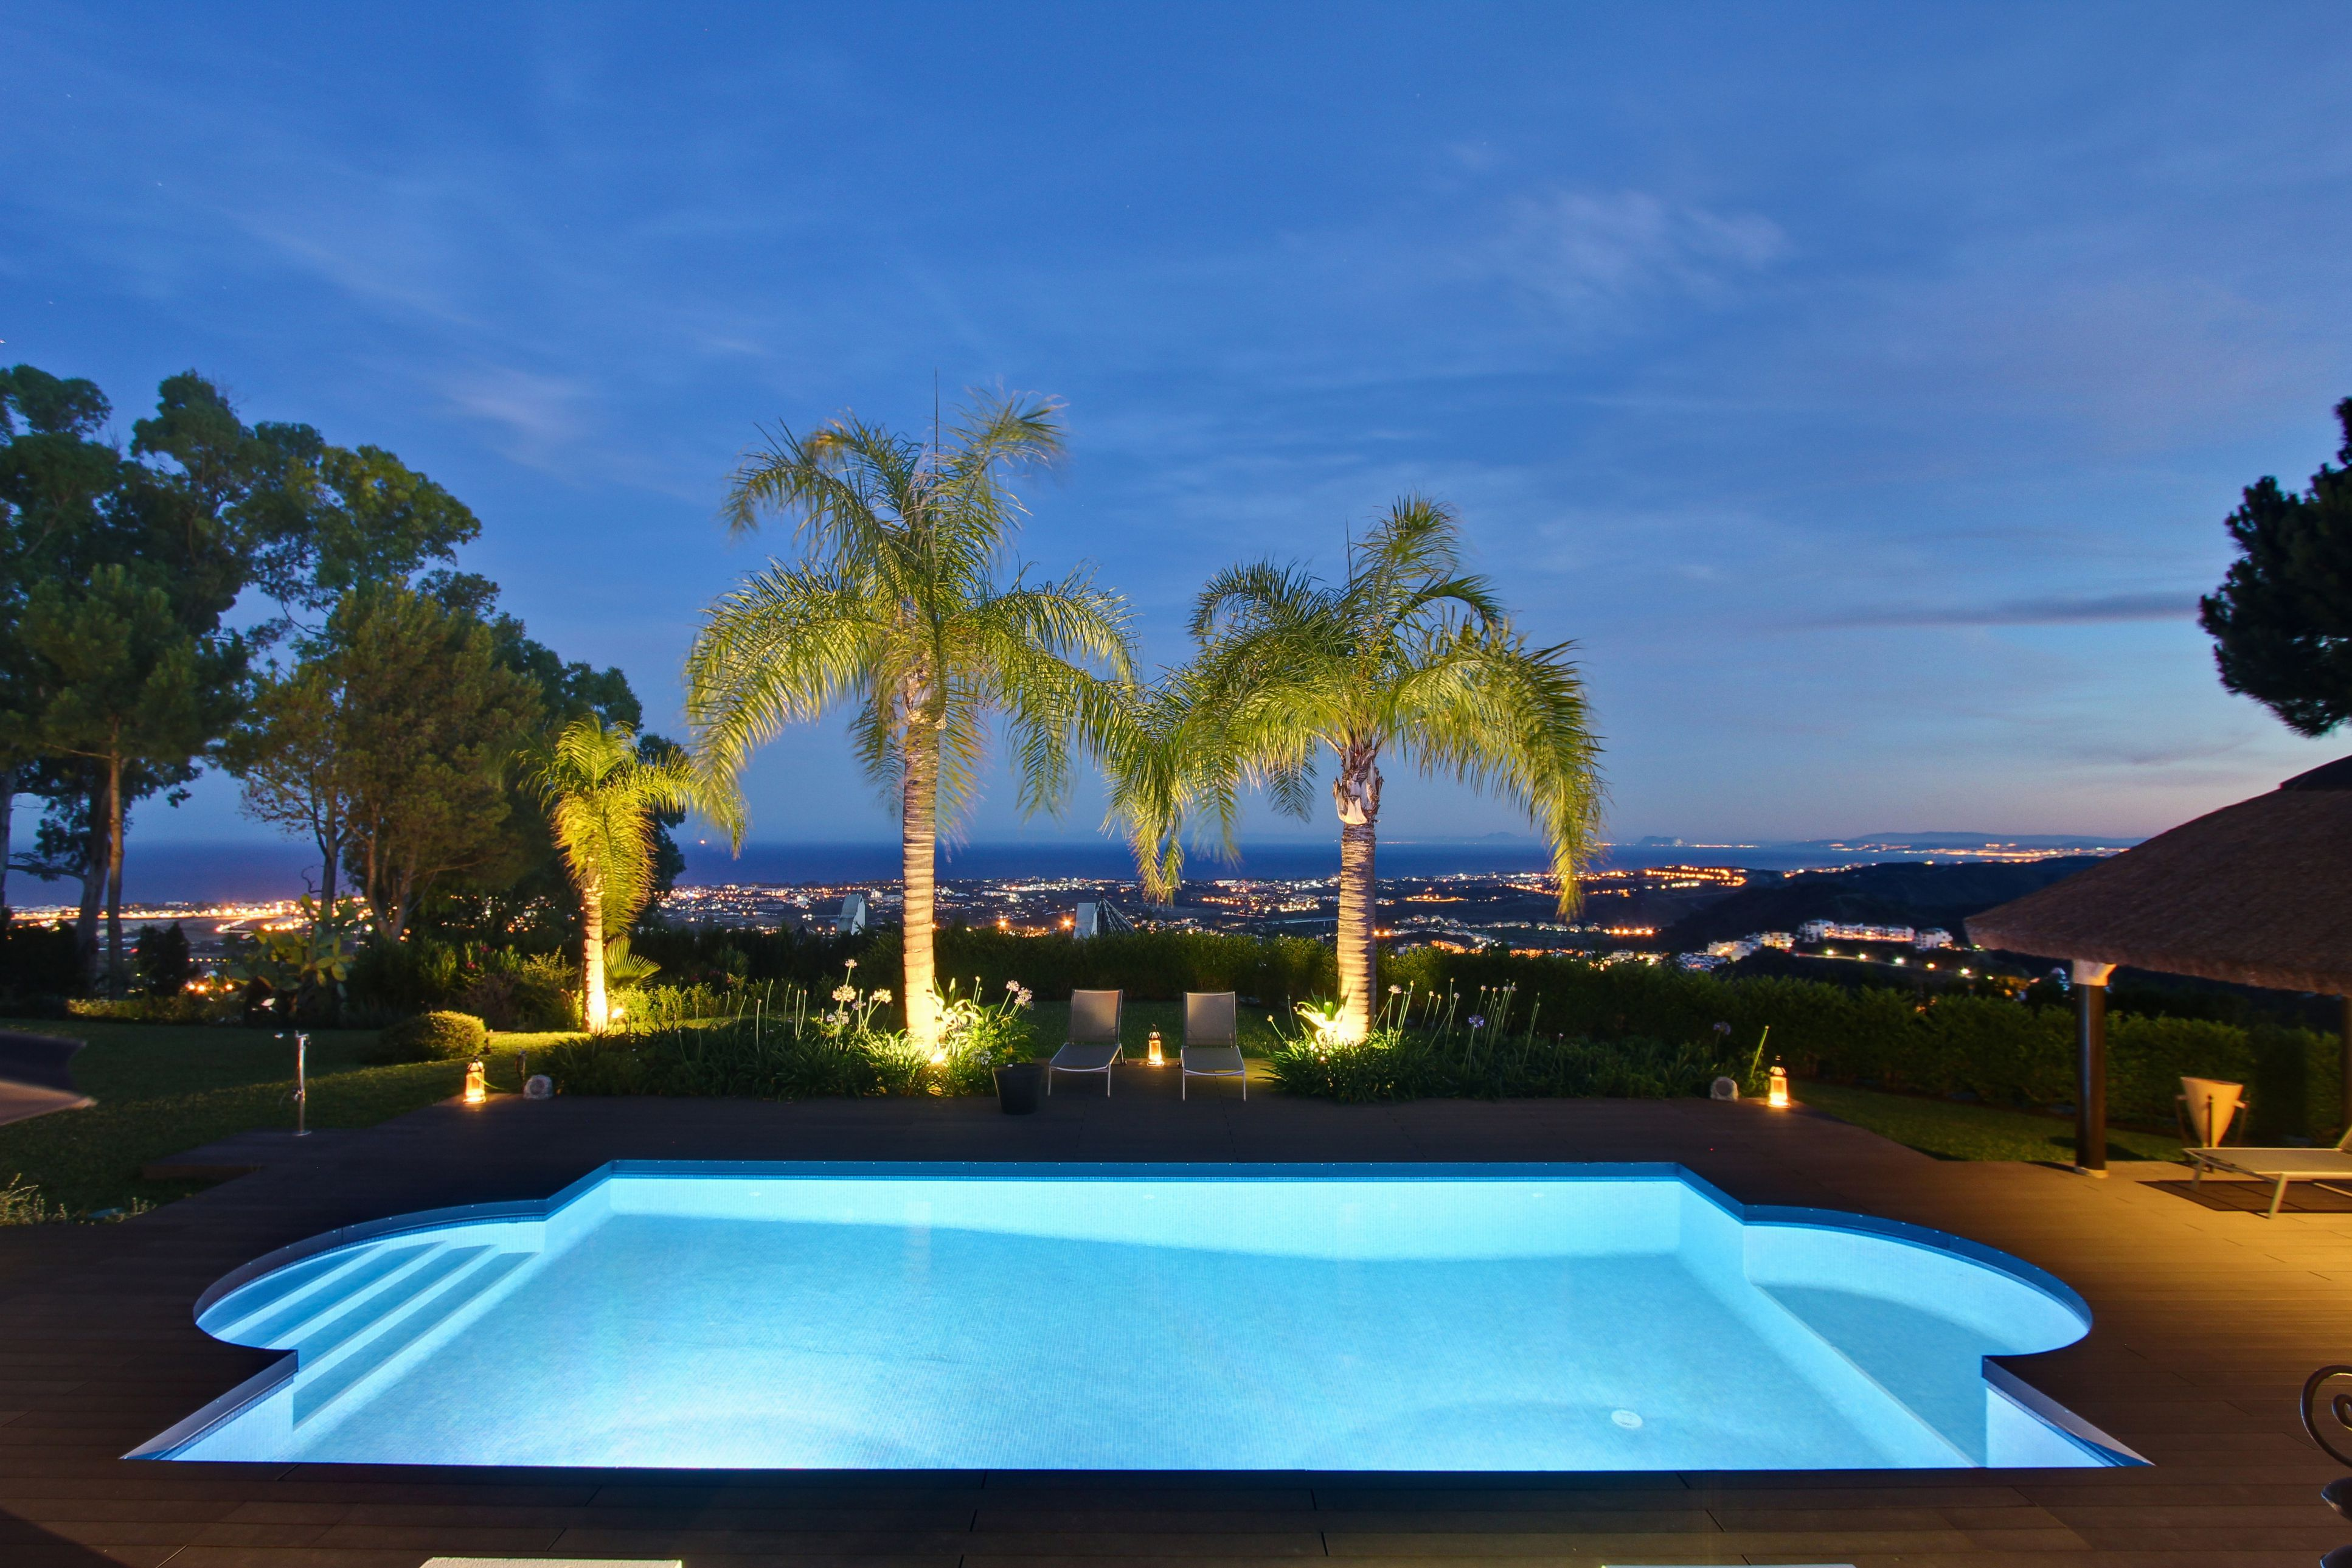 Palm trees and a pool at night